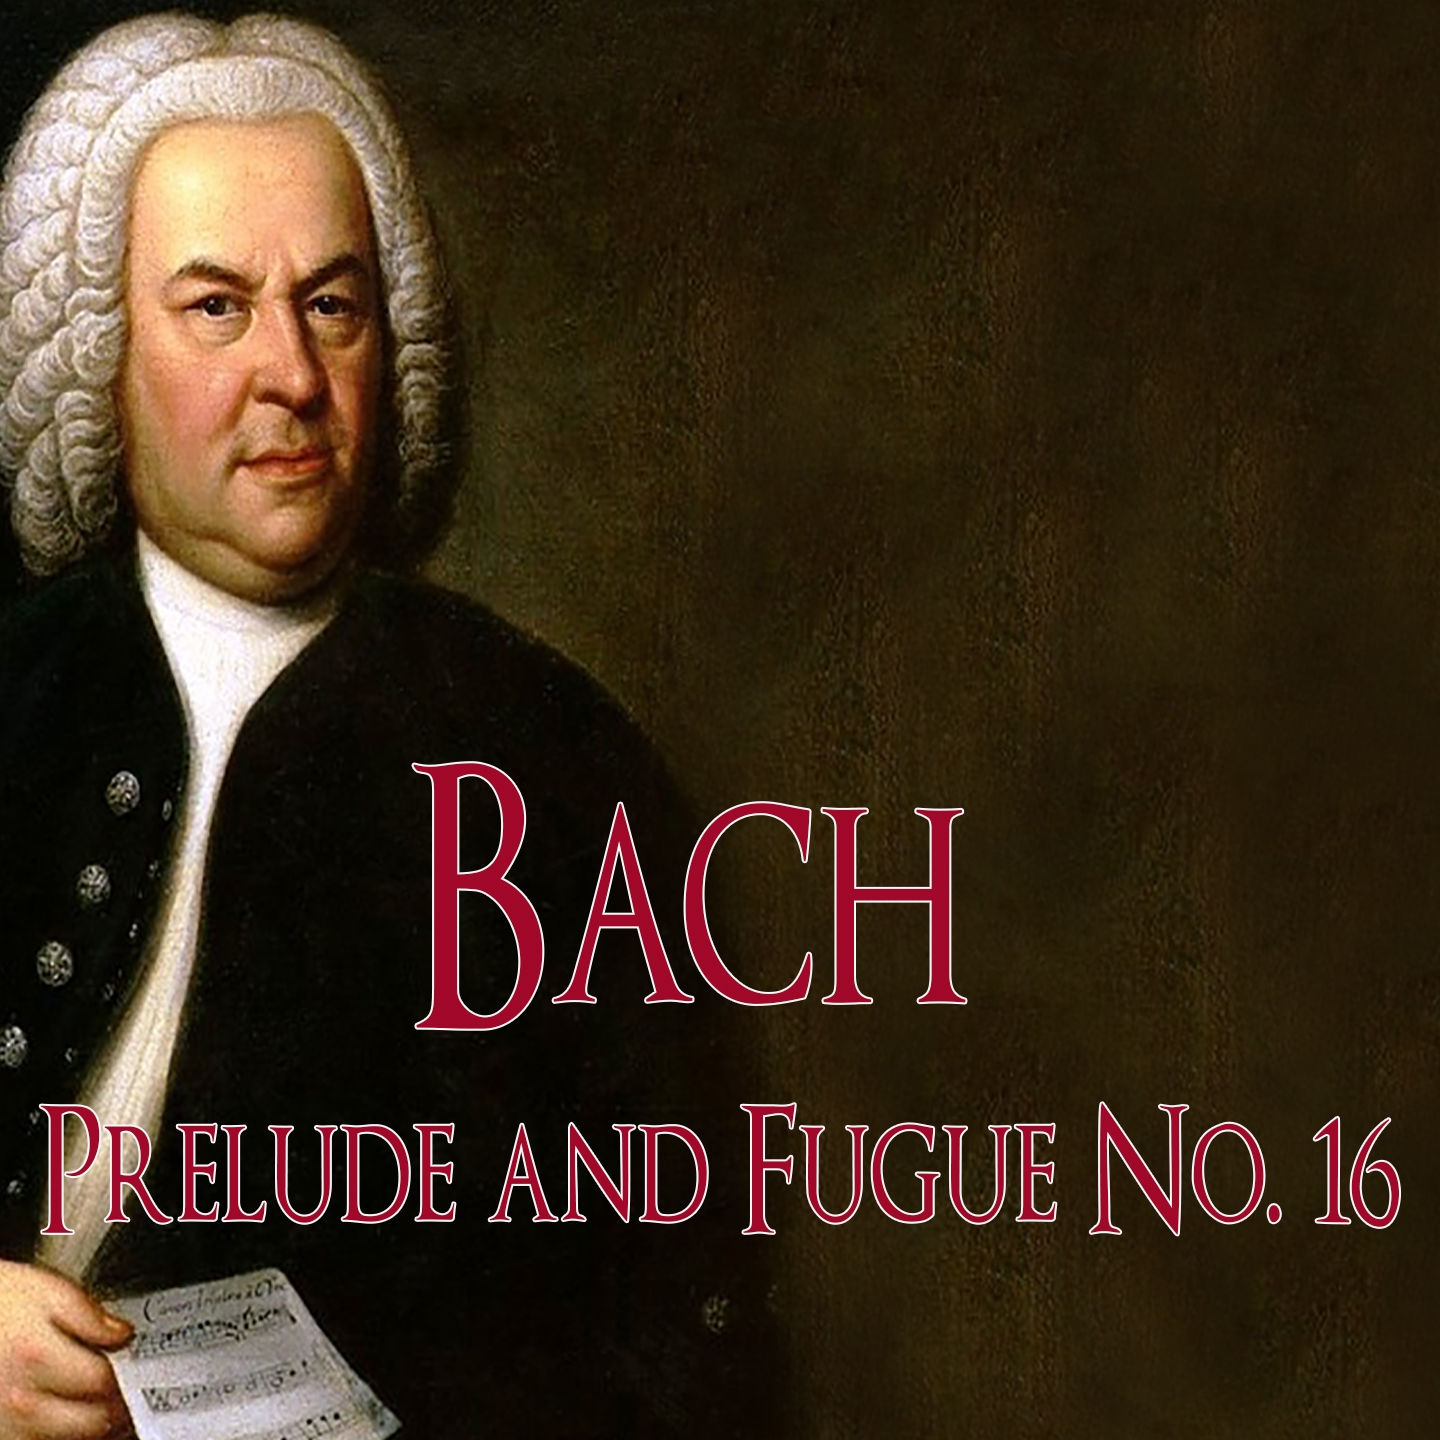 Bach: Prelude and Fugue No. 16, BWV 861